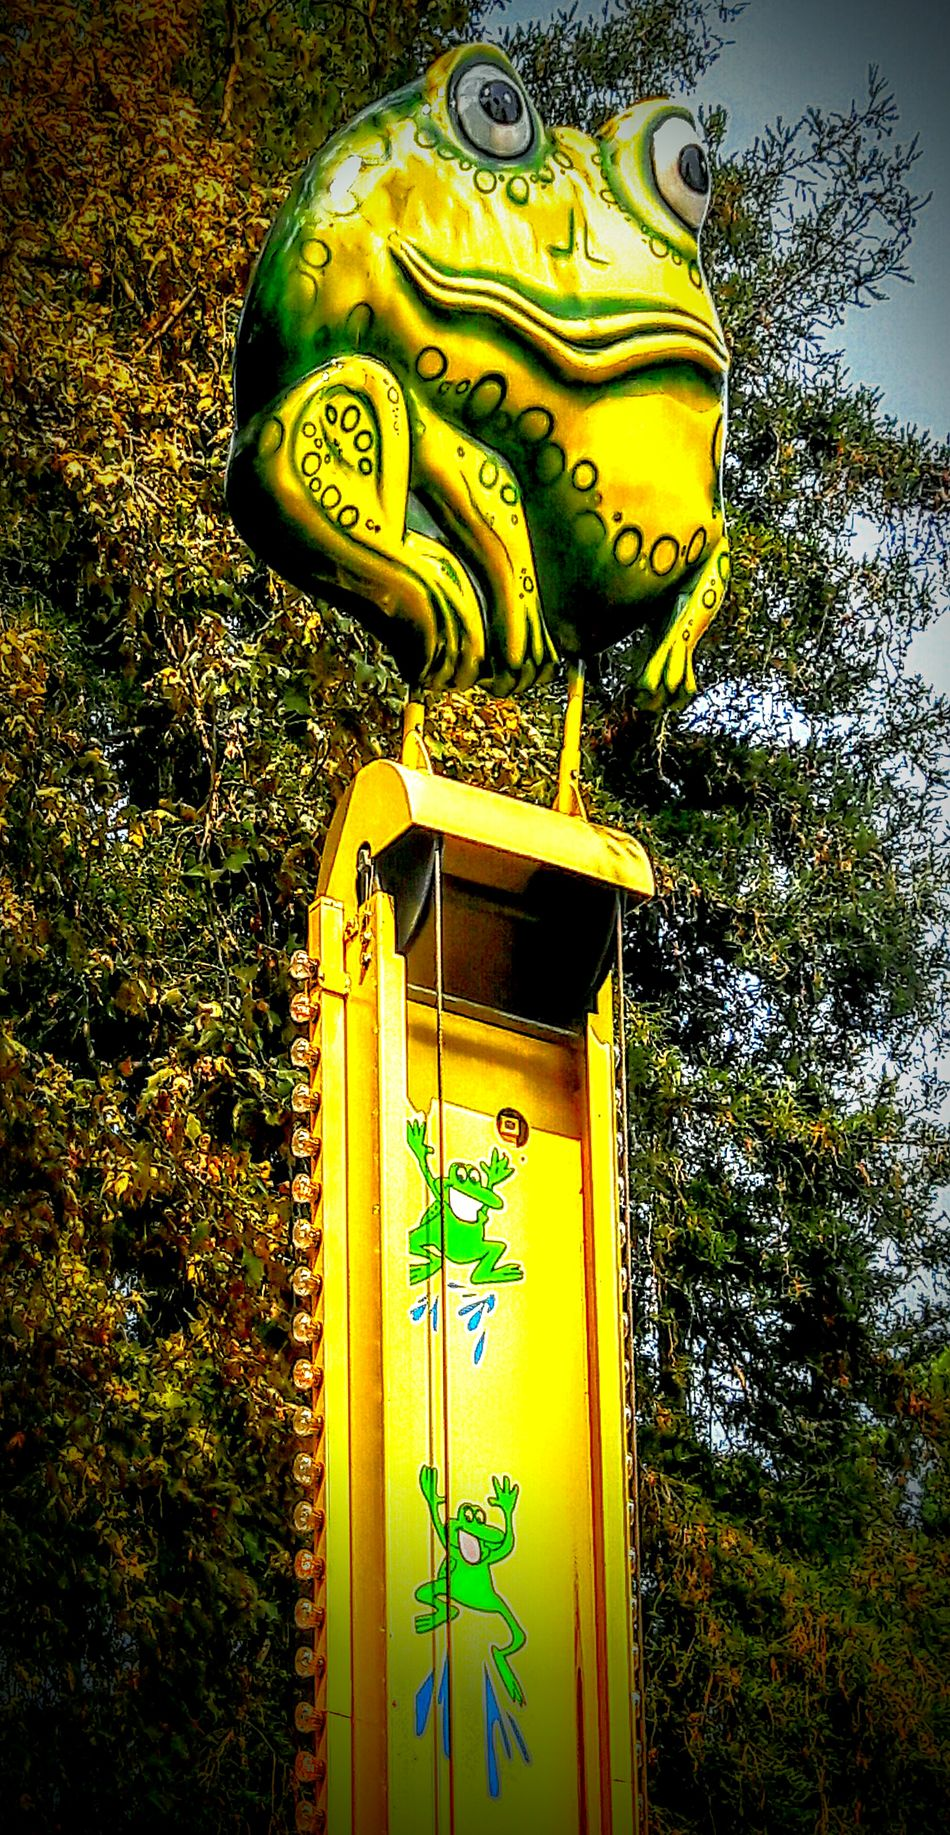 A frog in the woods... Enjoying Life Check This Out Eyem Best Shots EyeEm Gallery Eyeemphotography Color Photography Outdoor Photography Children Amusement Parks Cheese! Kiddy Ride Fun In The Sun ☀ Open Edit For Everyone Discovering Lots To See Froggy